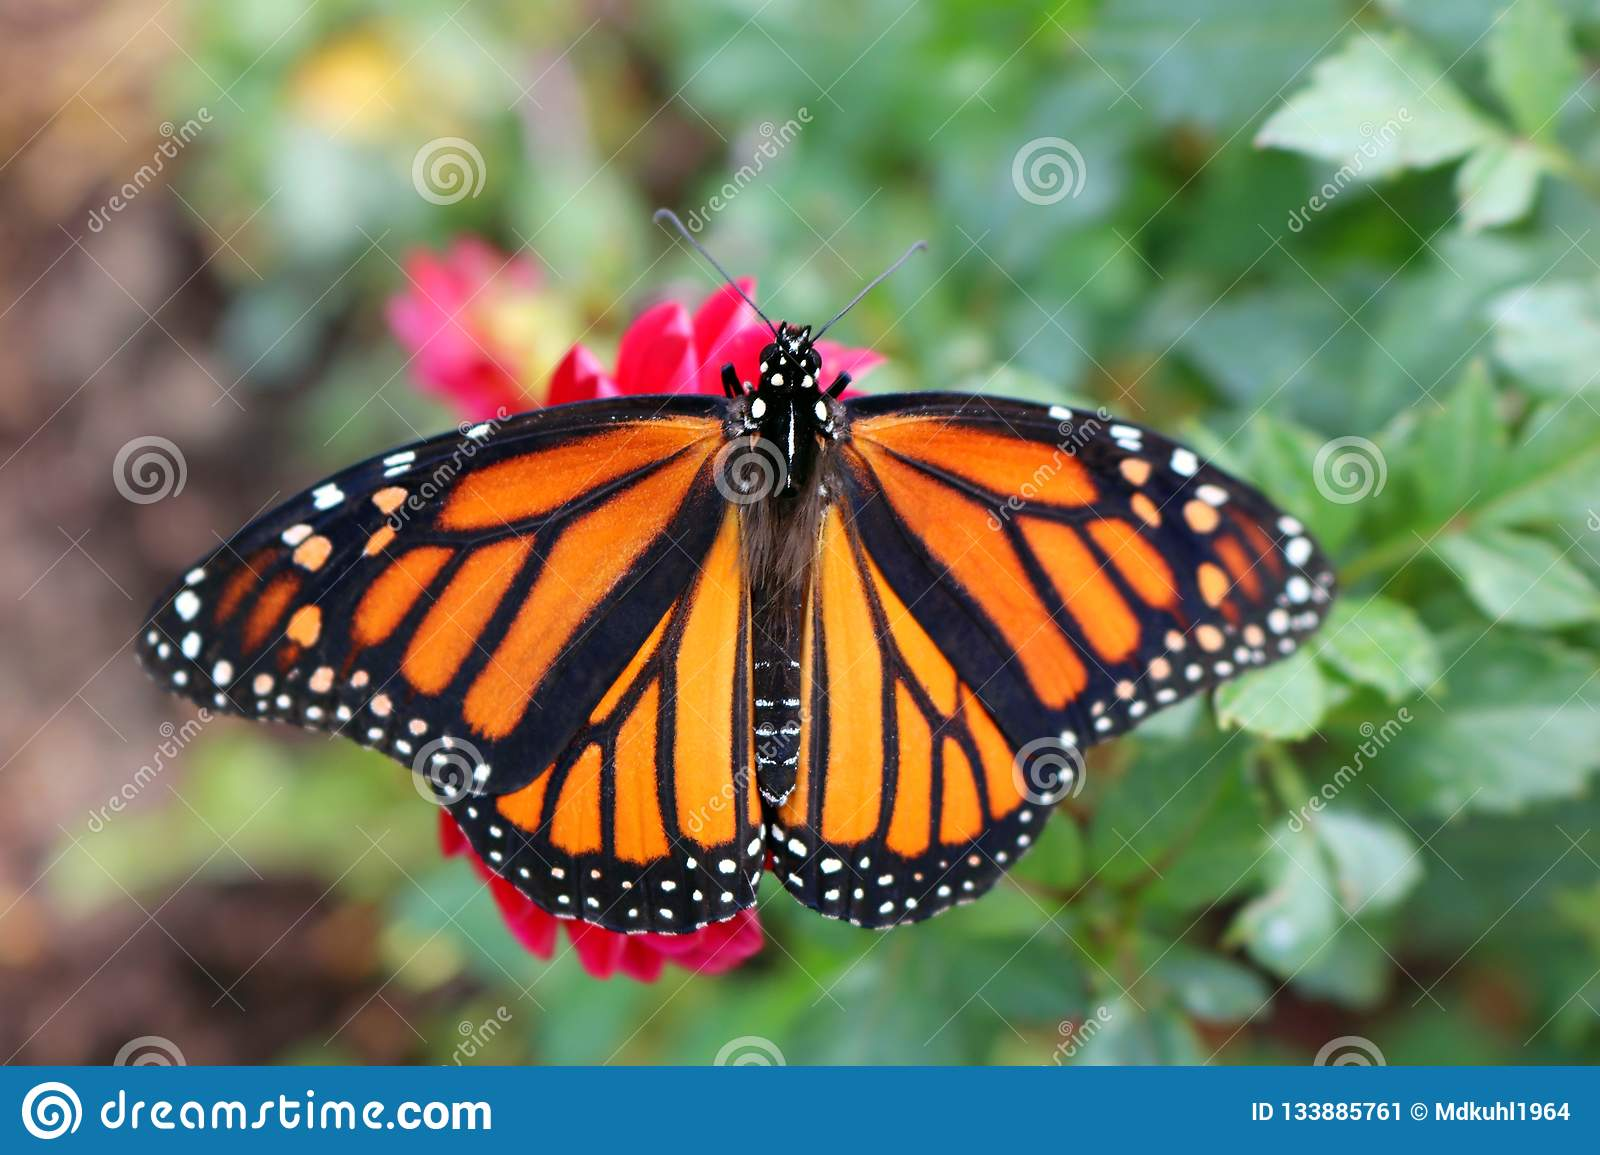 Closeup of a Monarch Butterfly on a red flower with wings opened